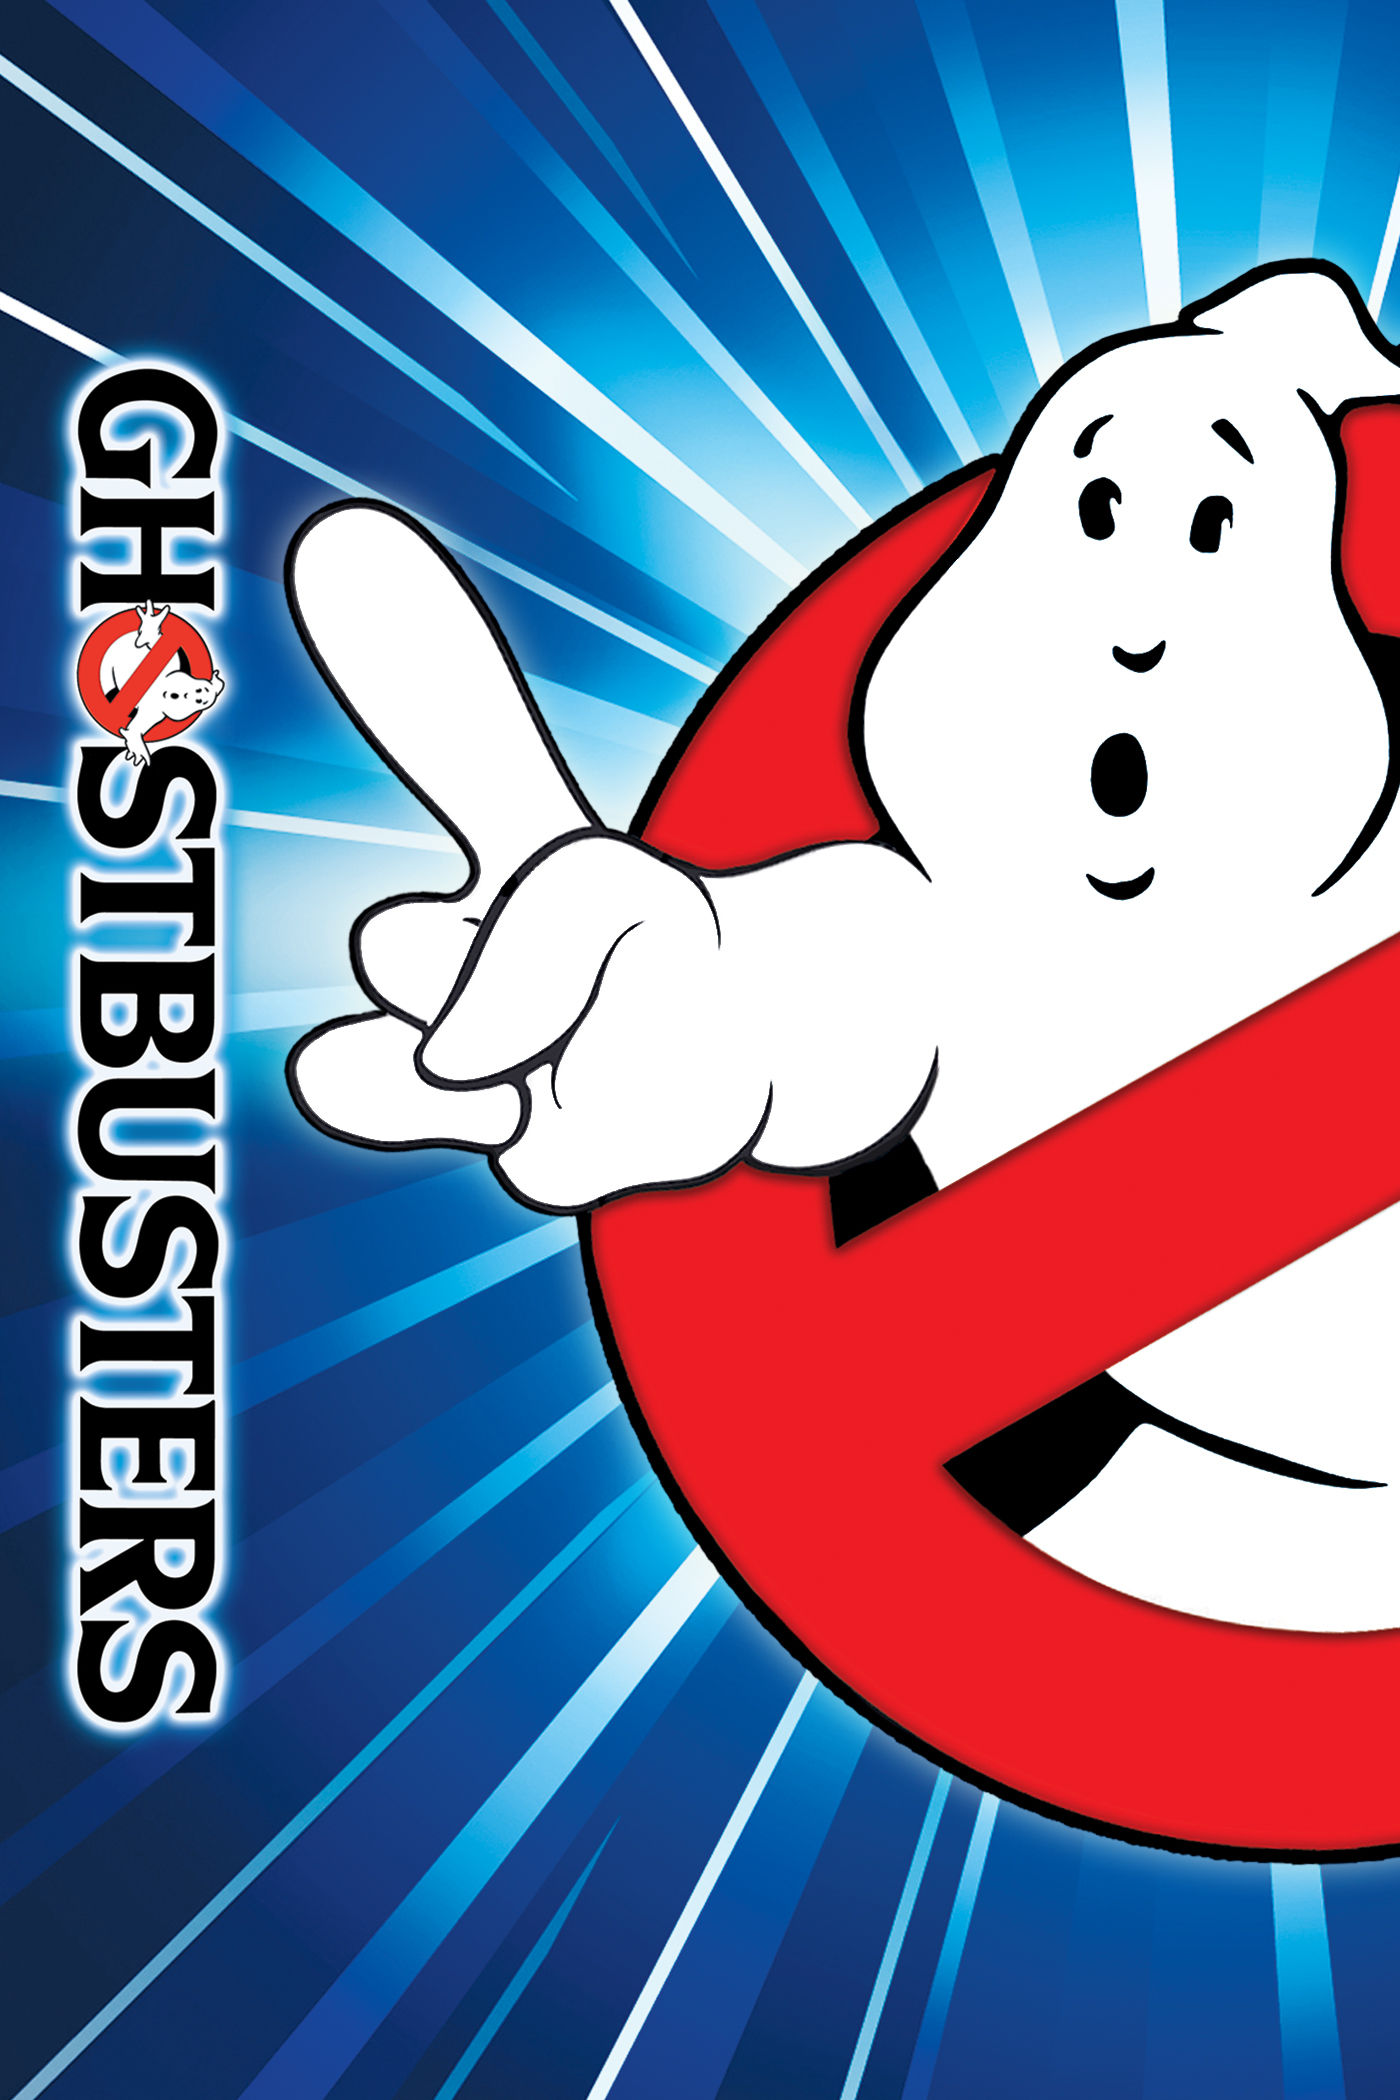 Ghostbusters, click to find out more